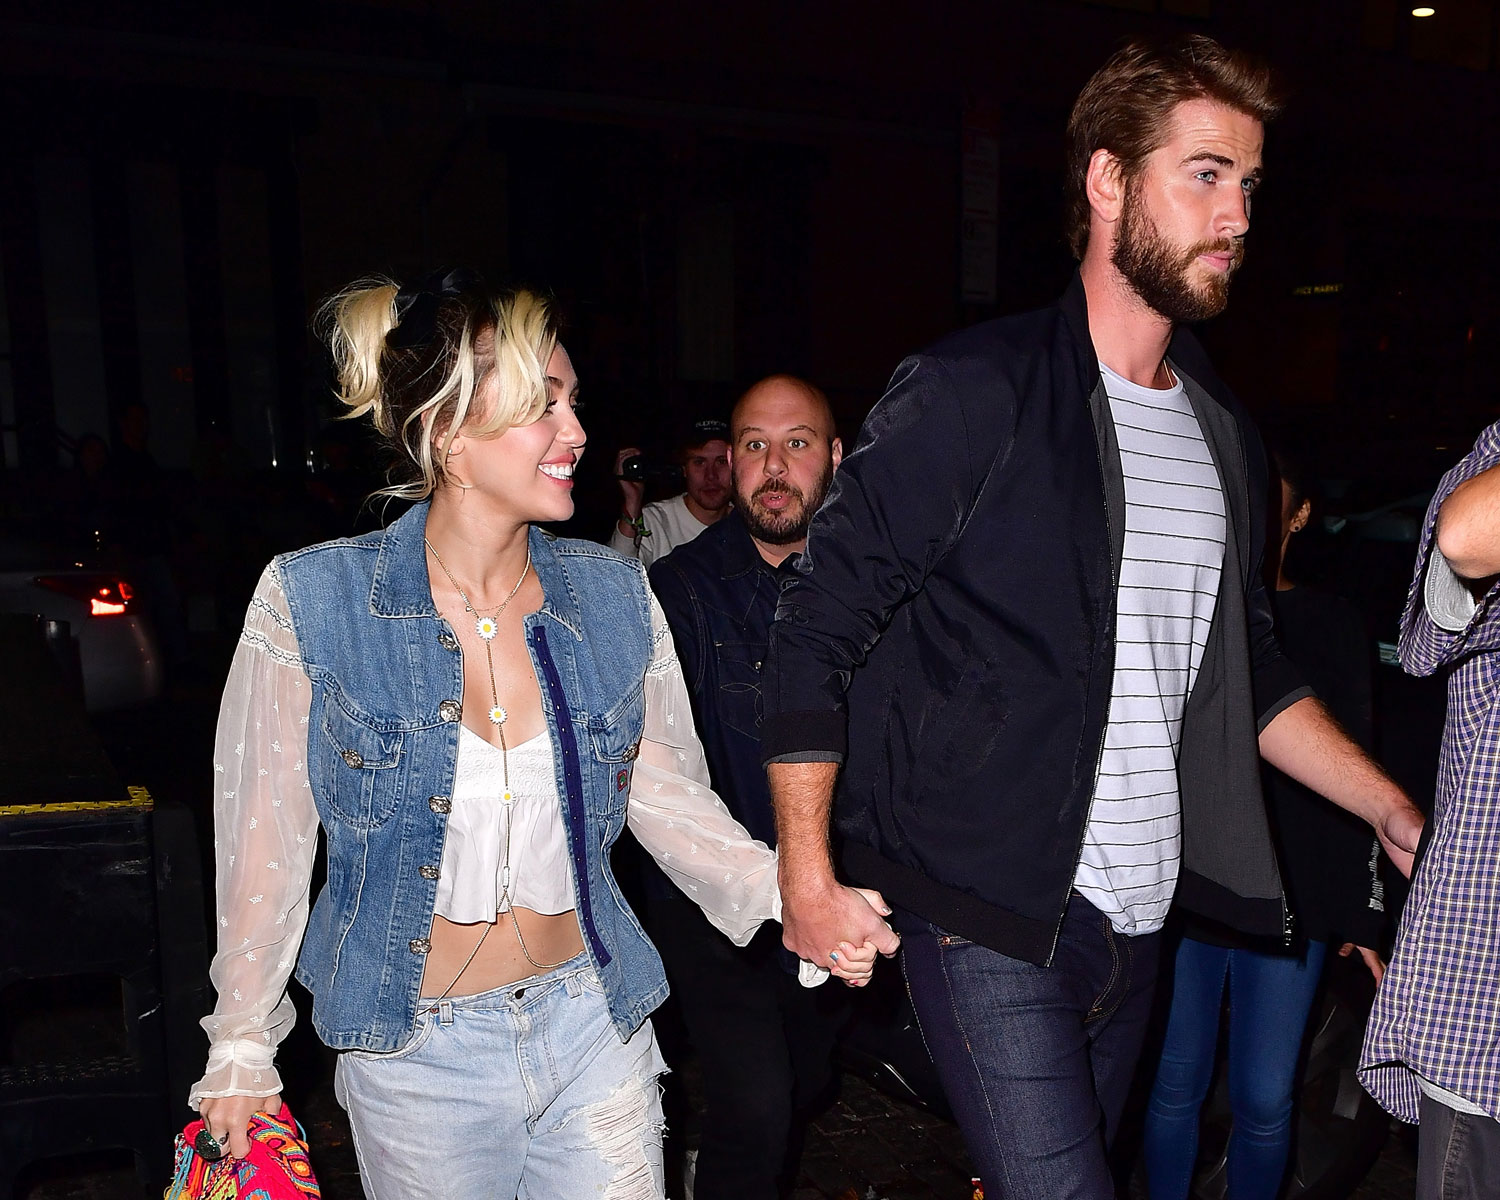 miley cyrus liam hemsworth pop idol miley cyrus shared her side of